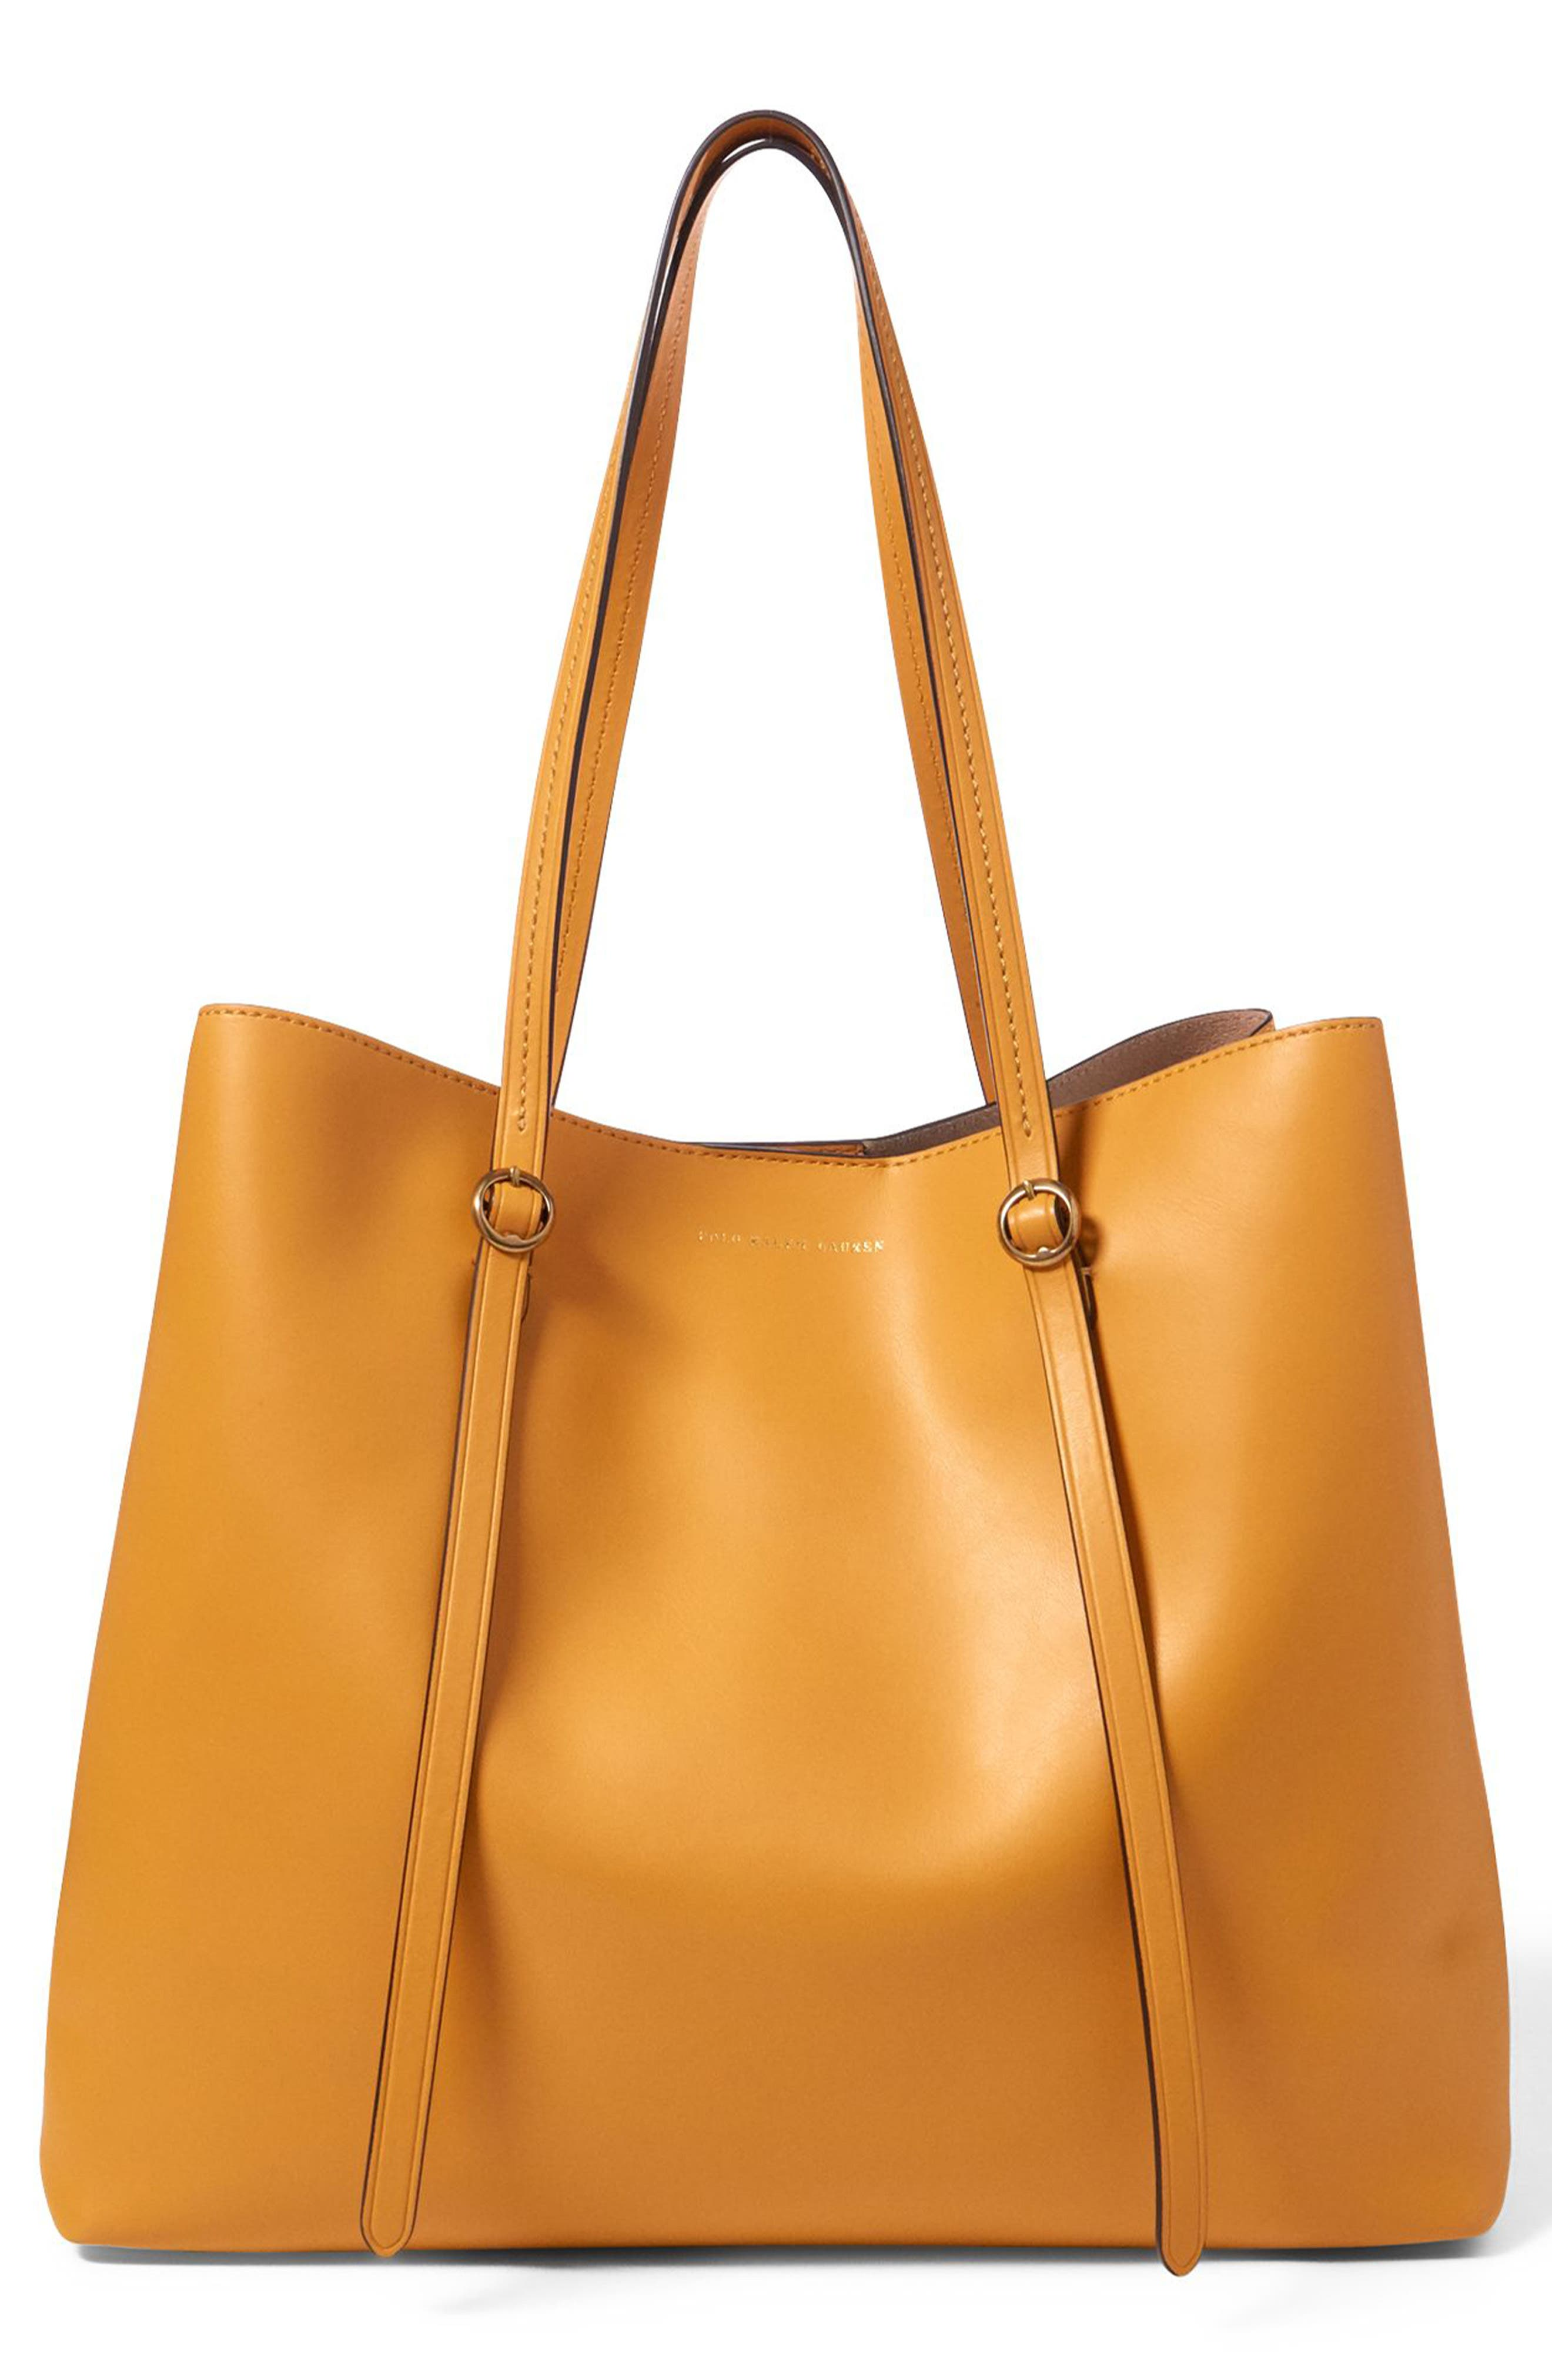 Alternate Image 1 Selected - Polo Ralph Lauren Lennox Leather Tote